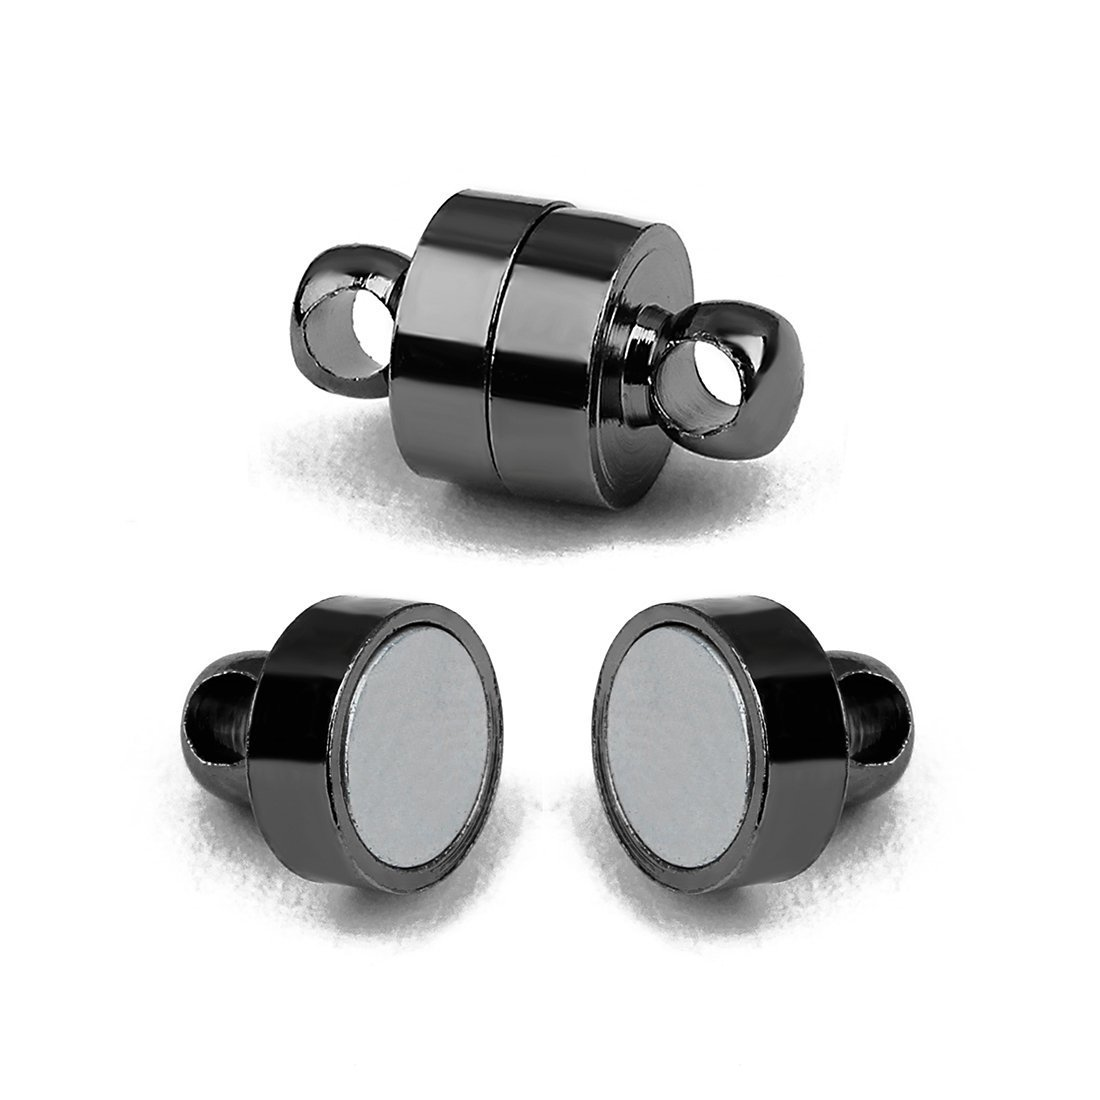 Linsoir Beads 10 Sets Small Strong Magnetic Barrel Clasps Black Magnetic Fasten Specially for RA Person